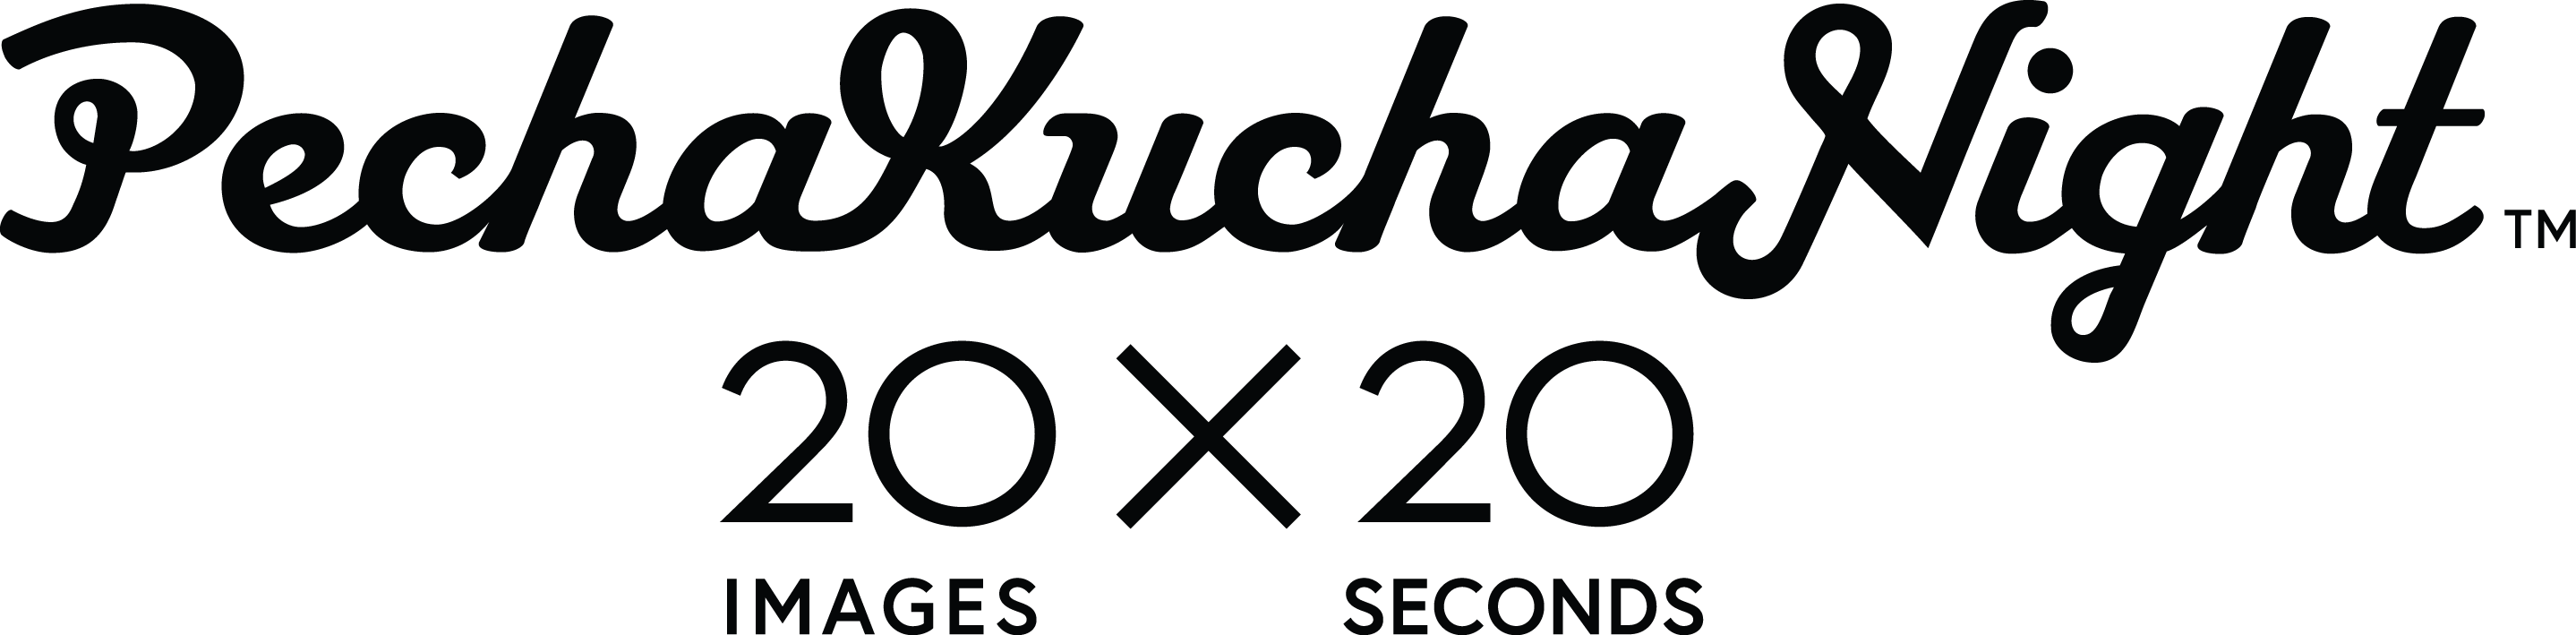 PechaKucha Night Vol. 162